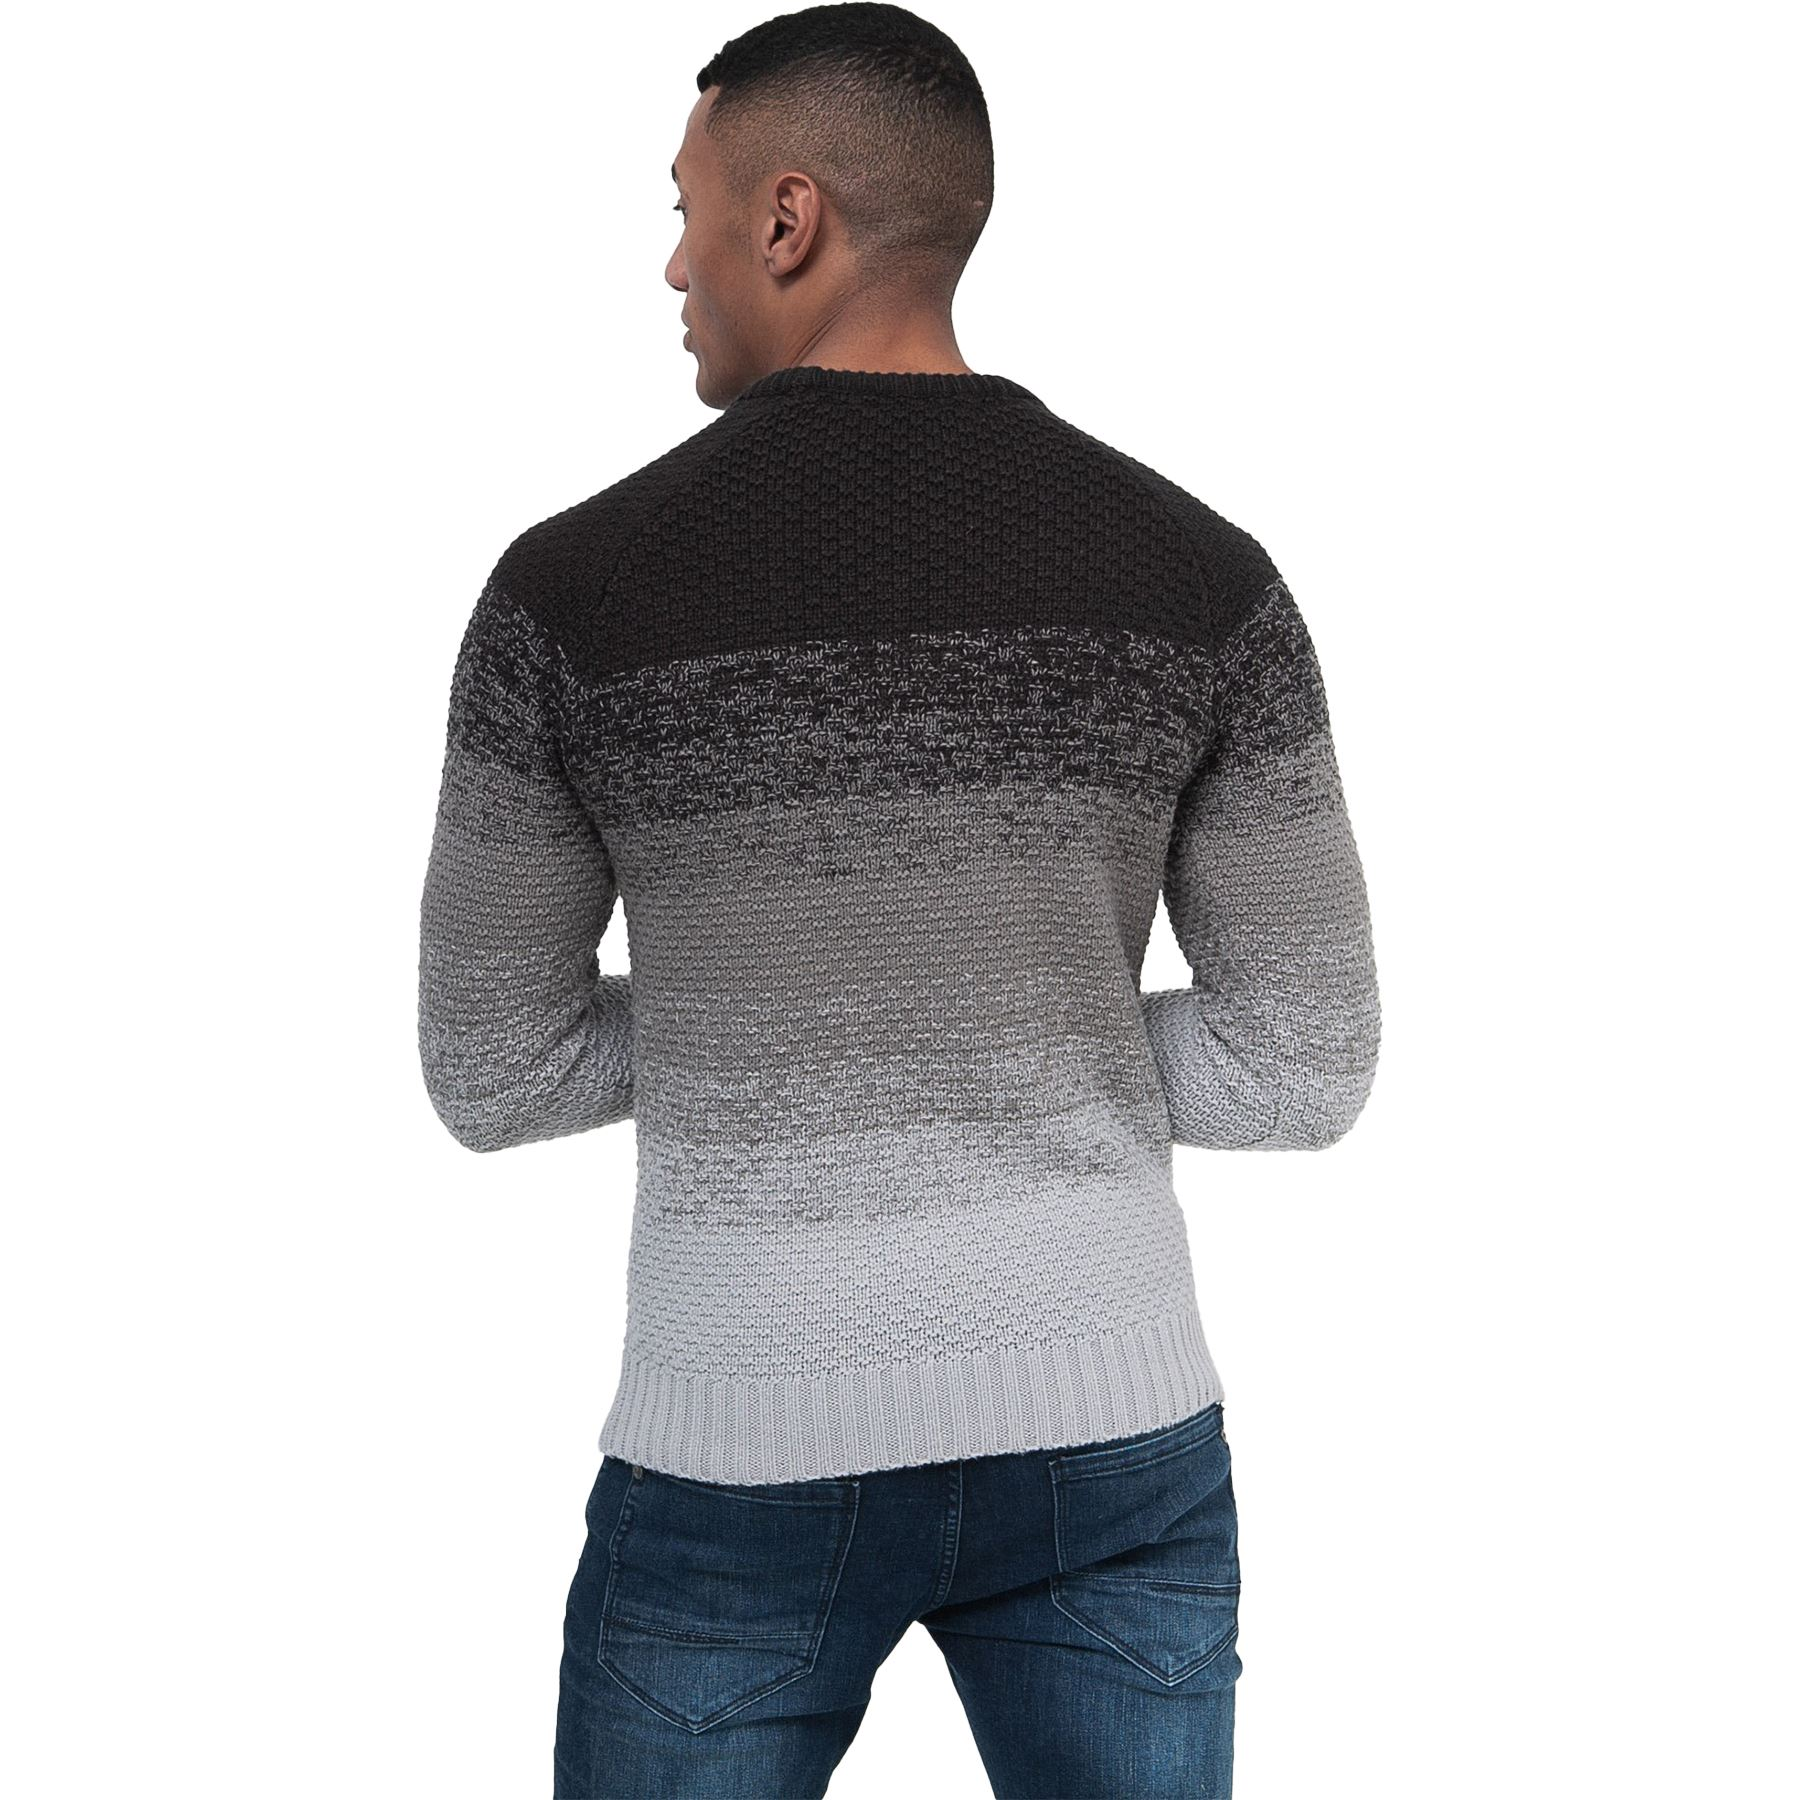 Mens-Knit-Jumper-Cable-Fisherman-Crosshatch-Sweater-Pullover-Top-Ribbed-Winter thumbnail 6